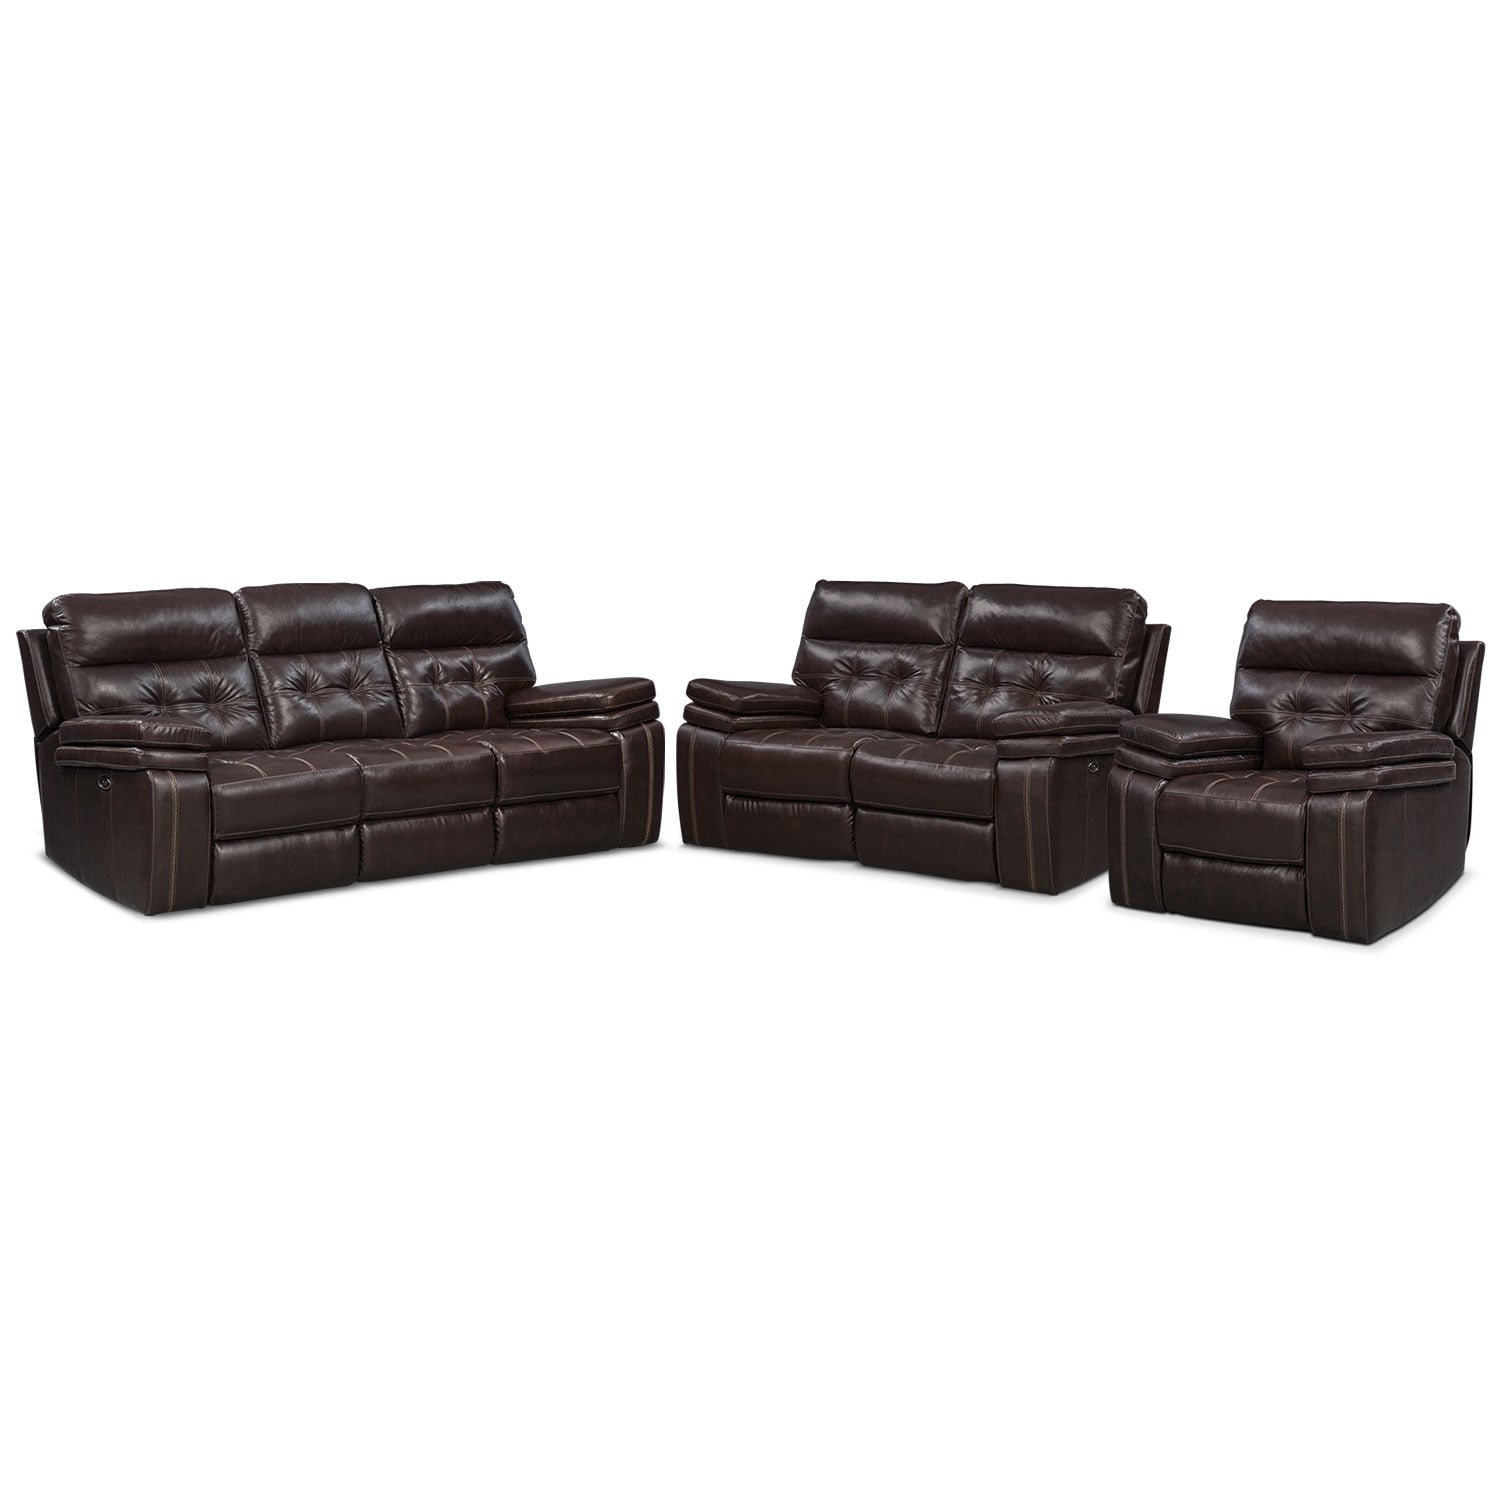 marlow reclining sofa loveseat and chair set used bed for sale in kuwait brisco power glider